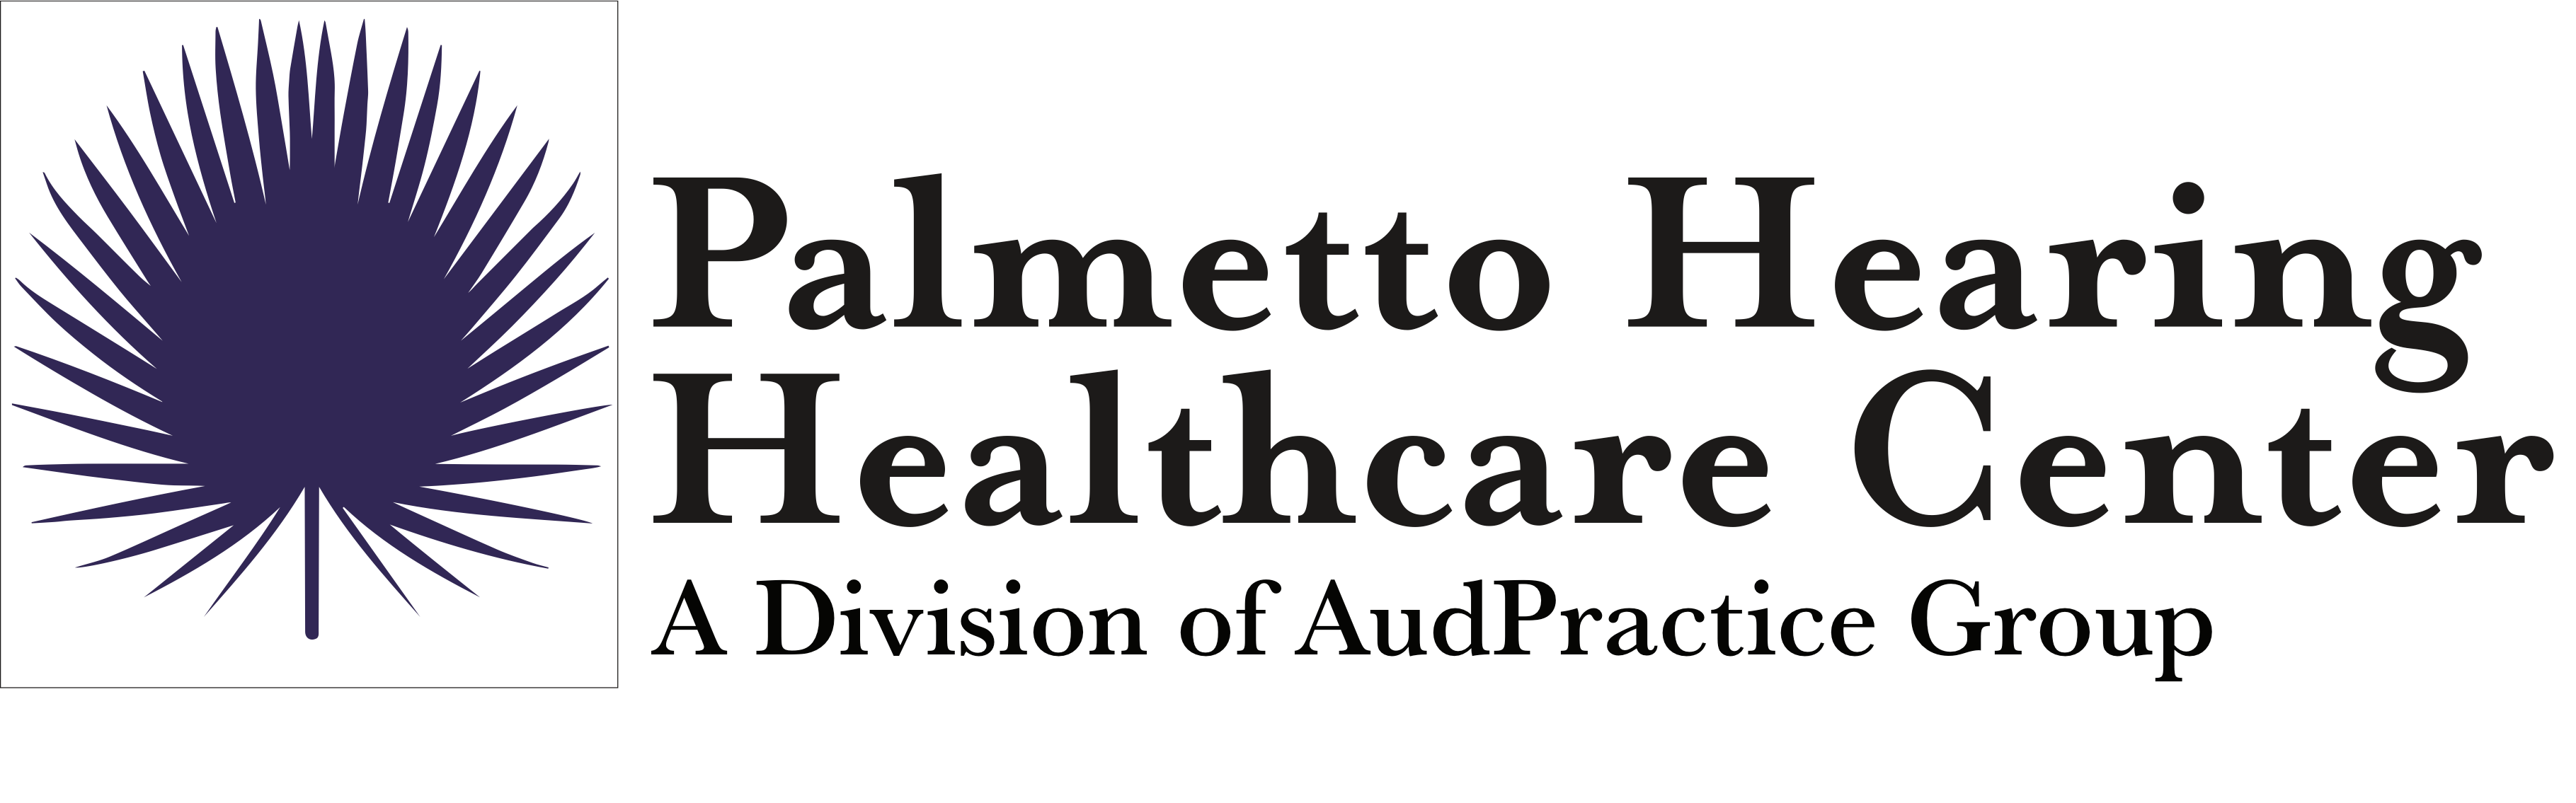 Palmetto Hearing Healthcare Center